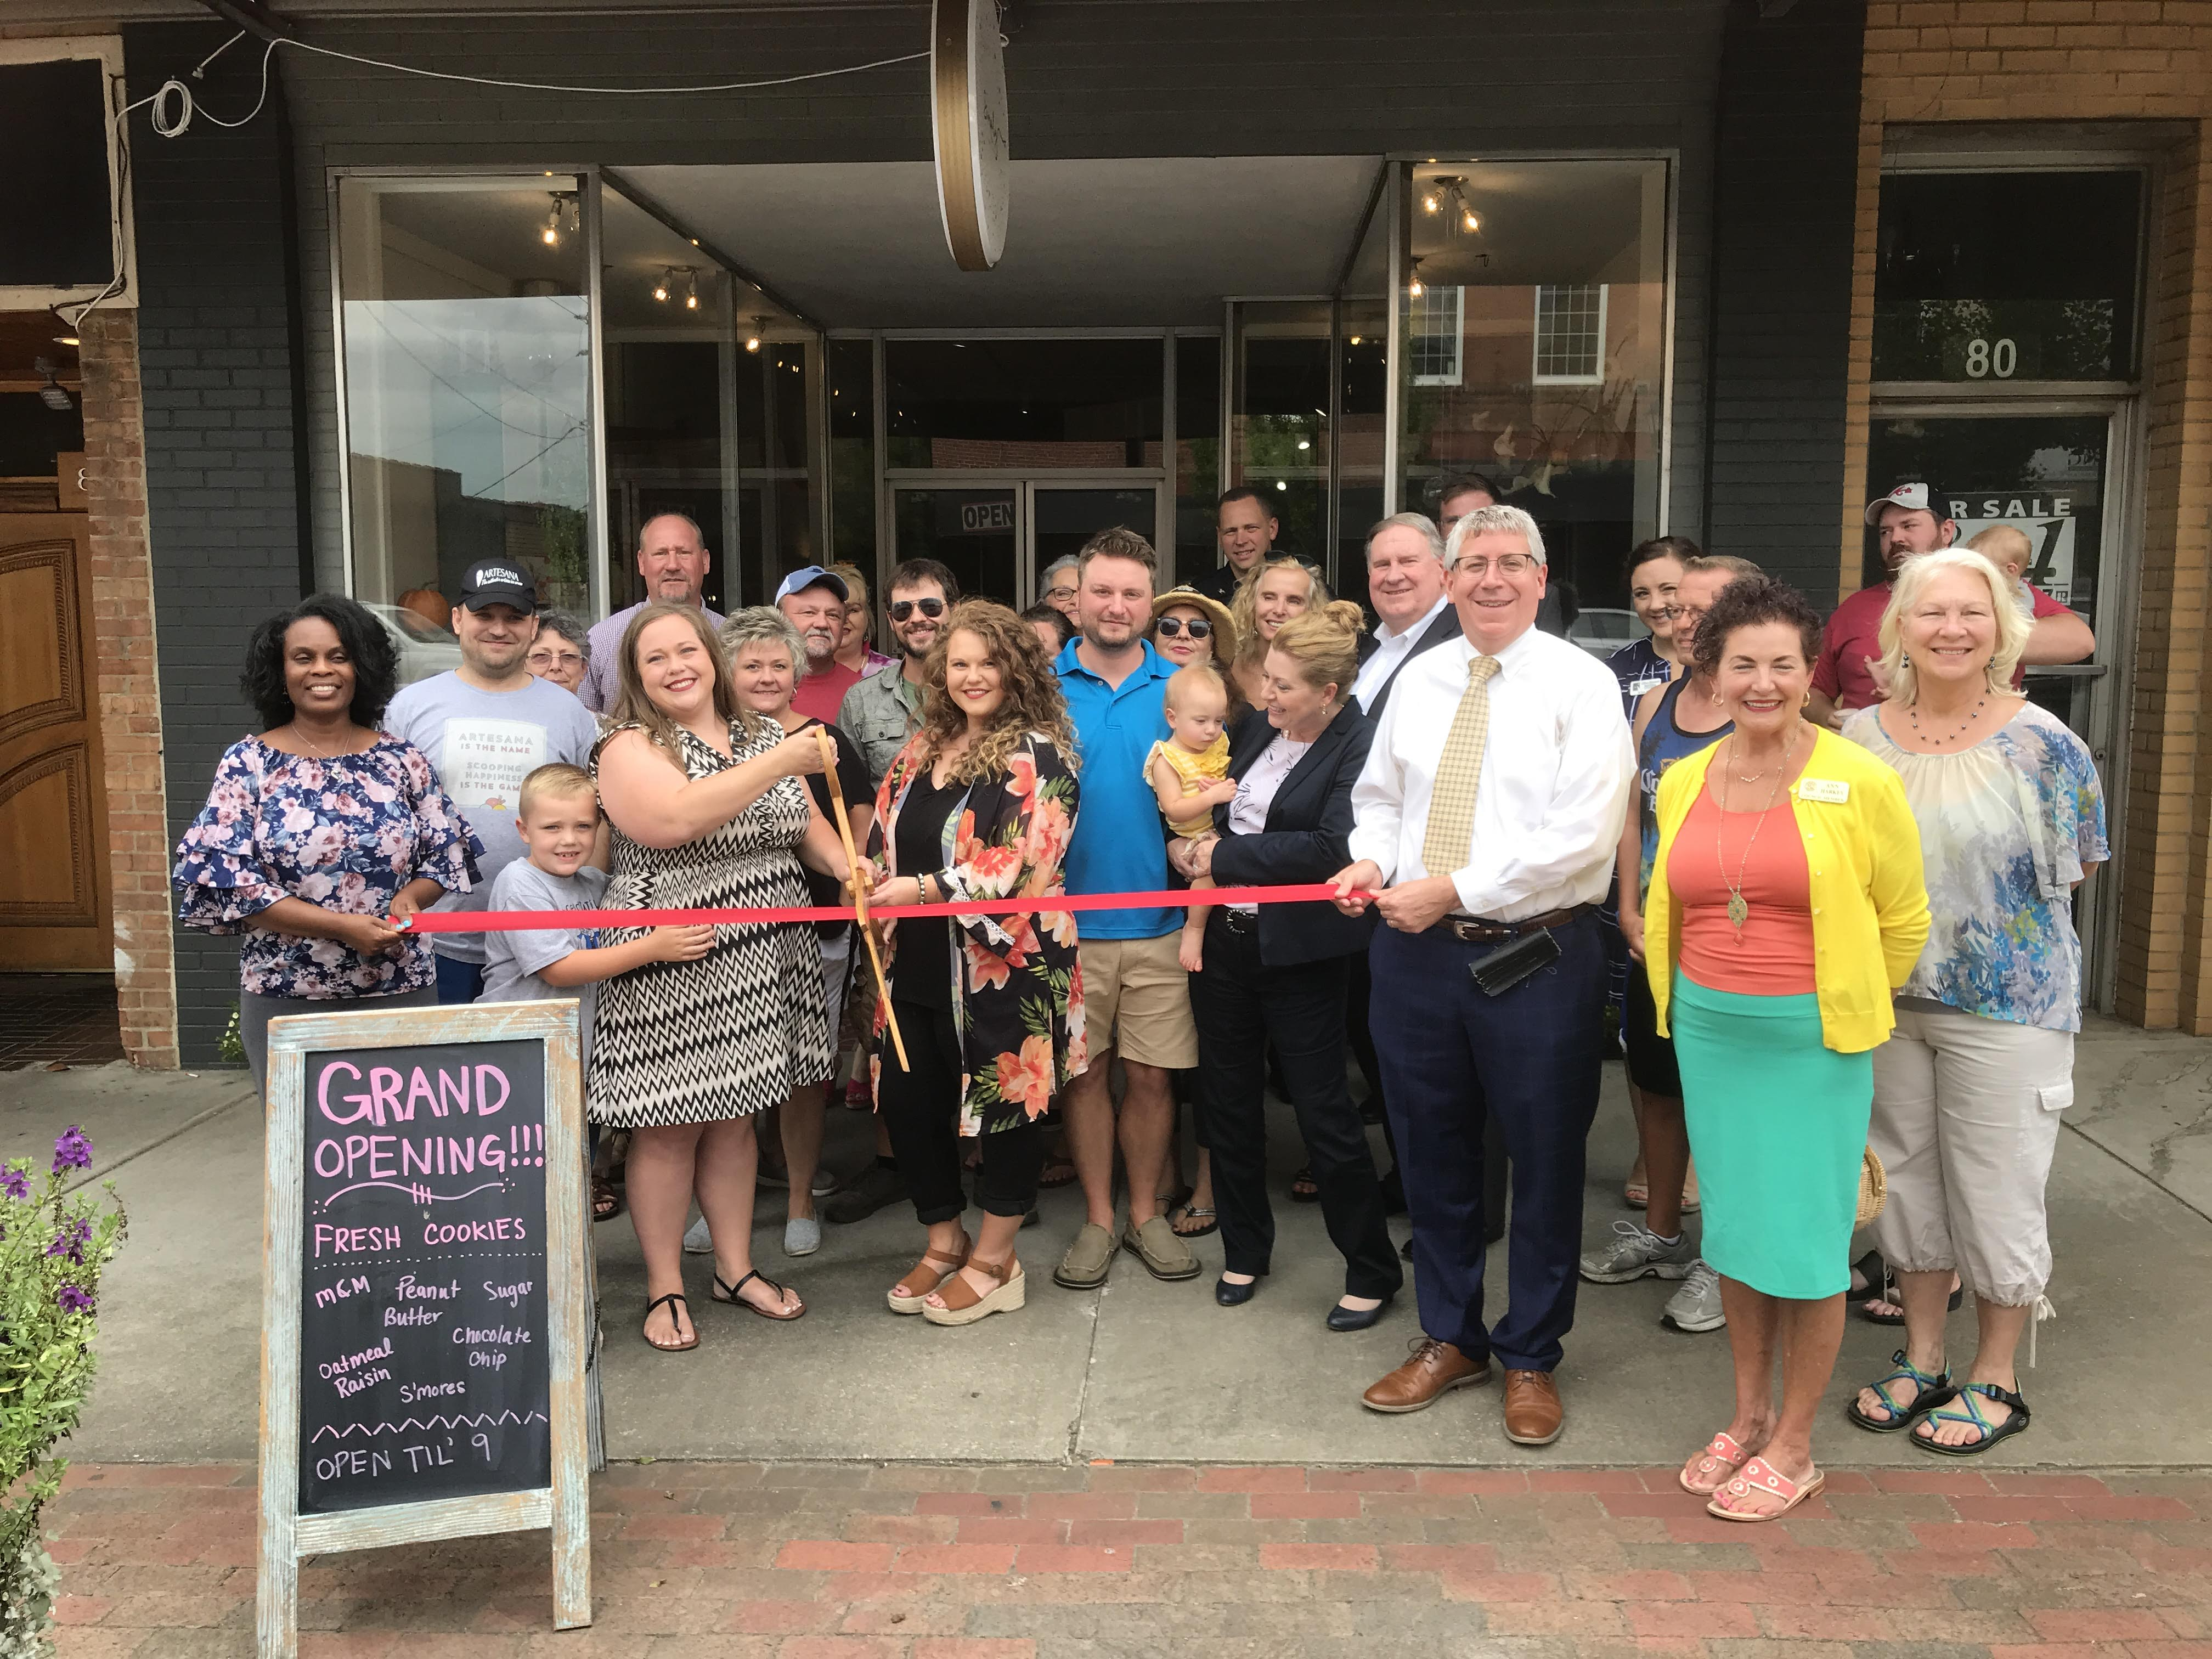 Simply, Happy & Sweet opens at 82 S. Main St. Marion, NC